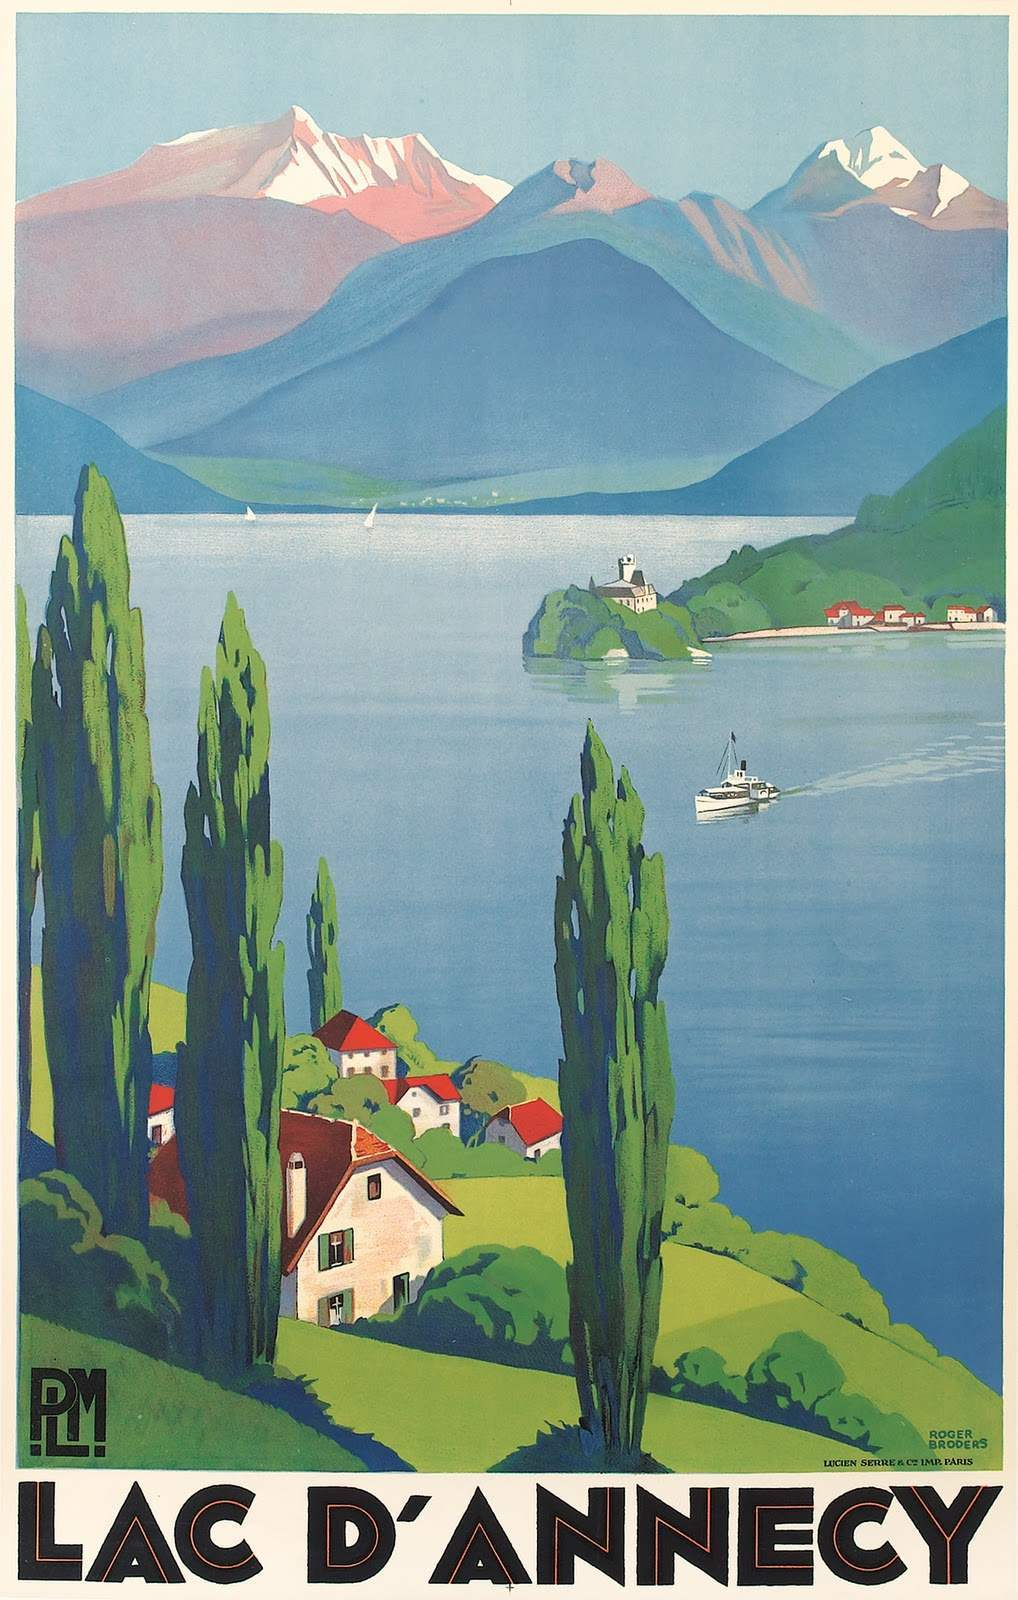 15 Beautiful French ArtDeco Travel Posters by Roger Broders